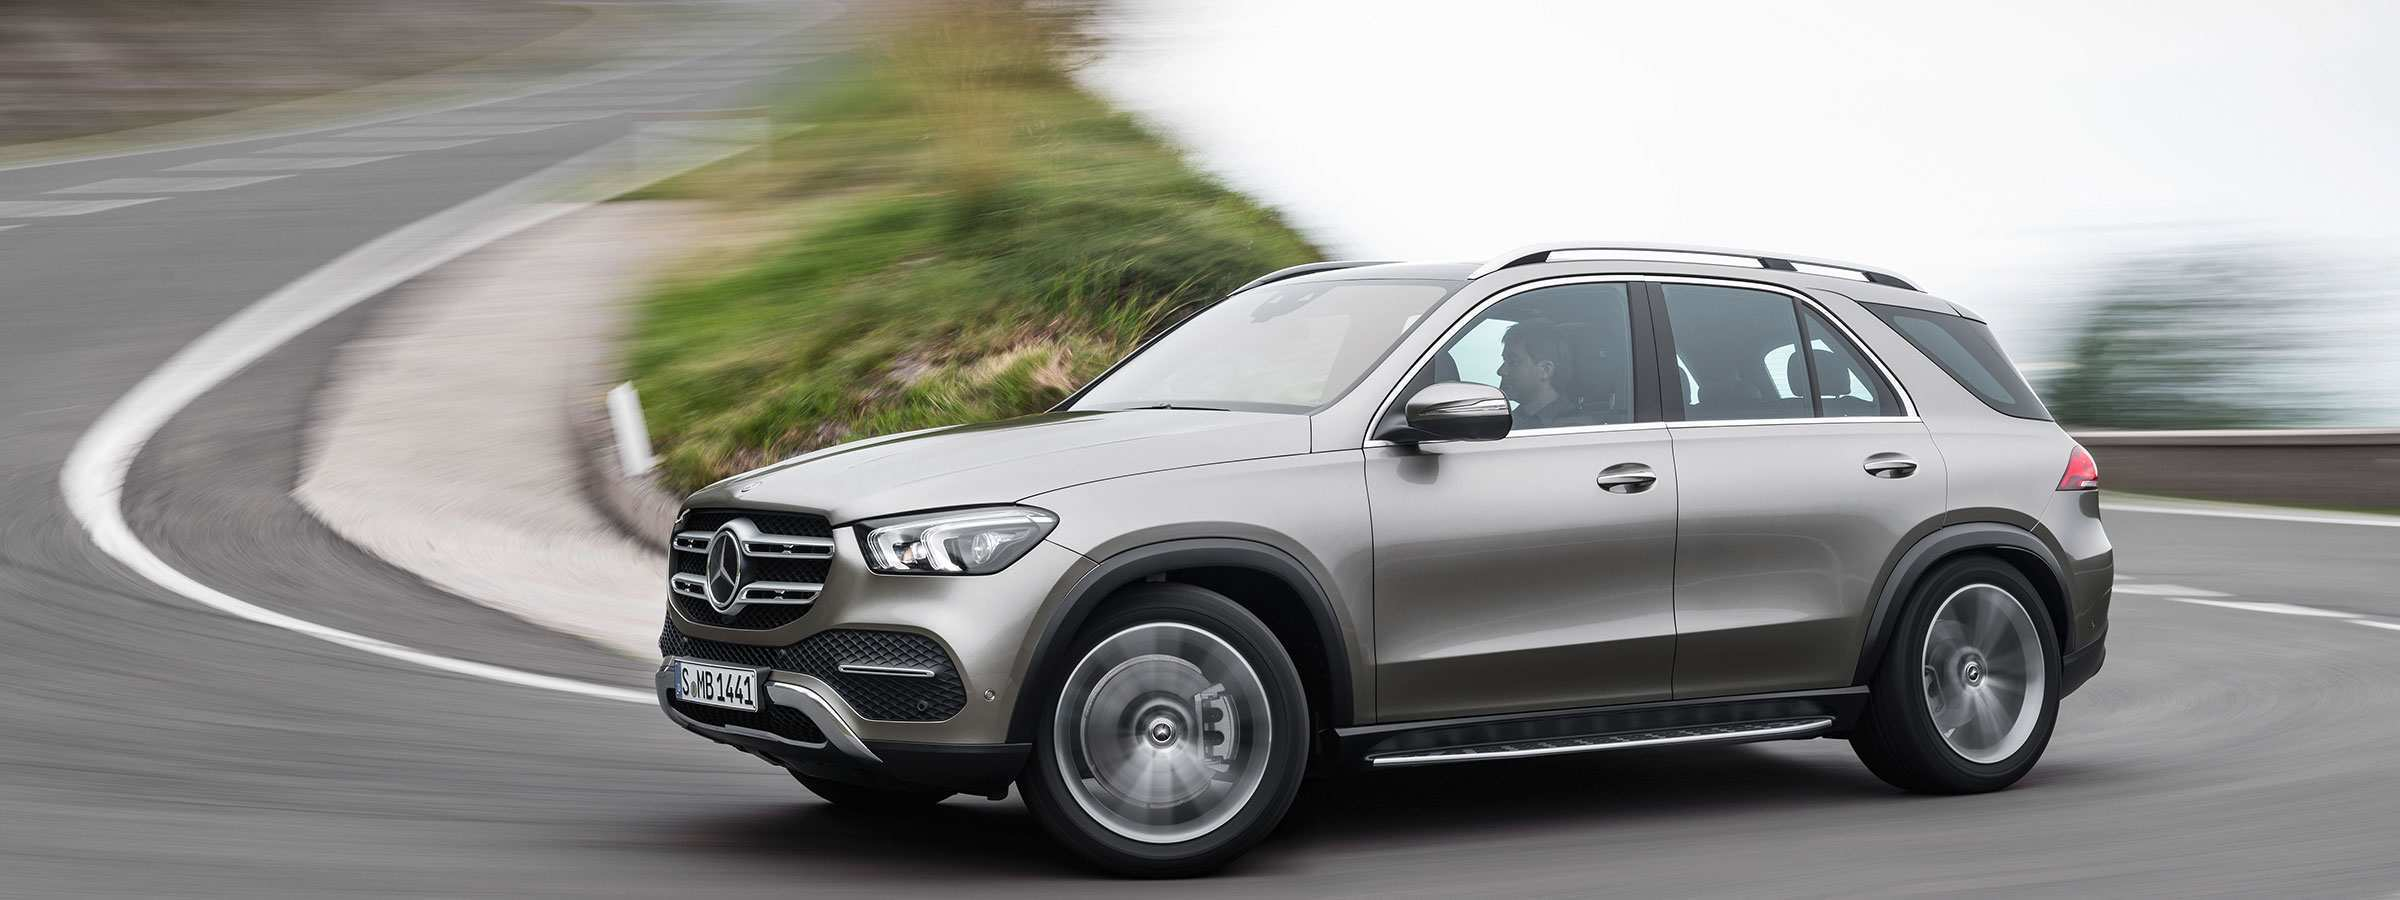 53 Great 2020 Mercedes Glc 2020 Exterior and Interior with 2020 Mercedes Glc 2020